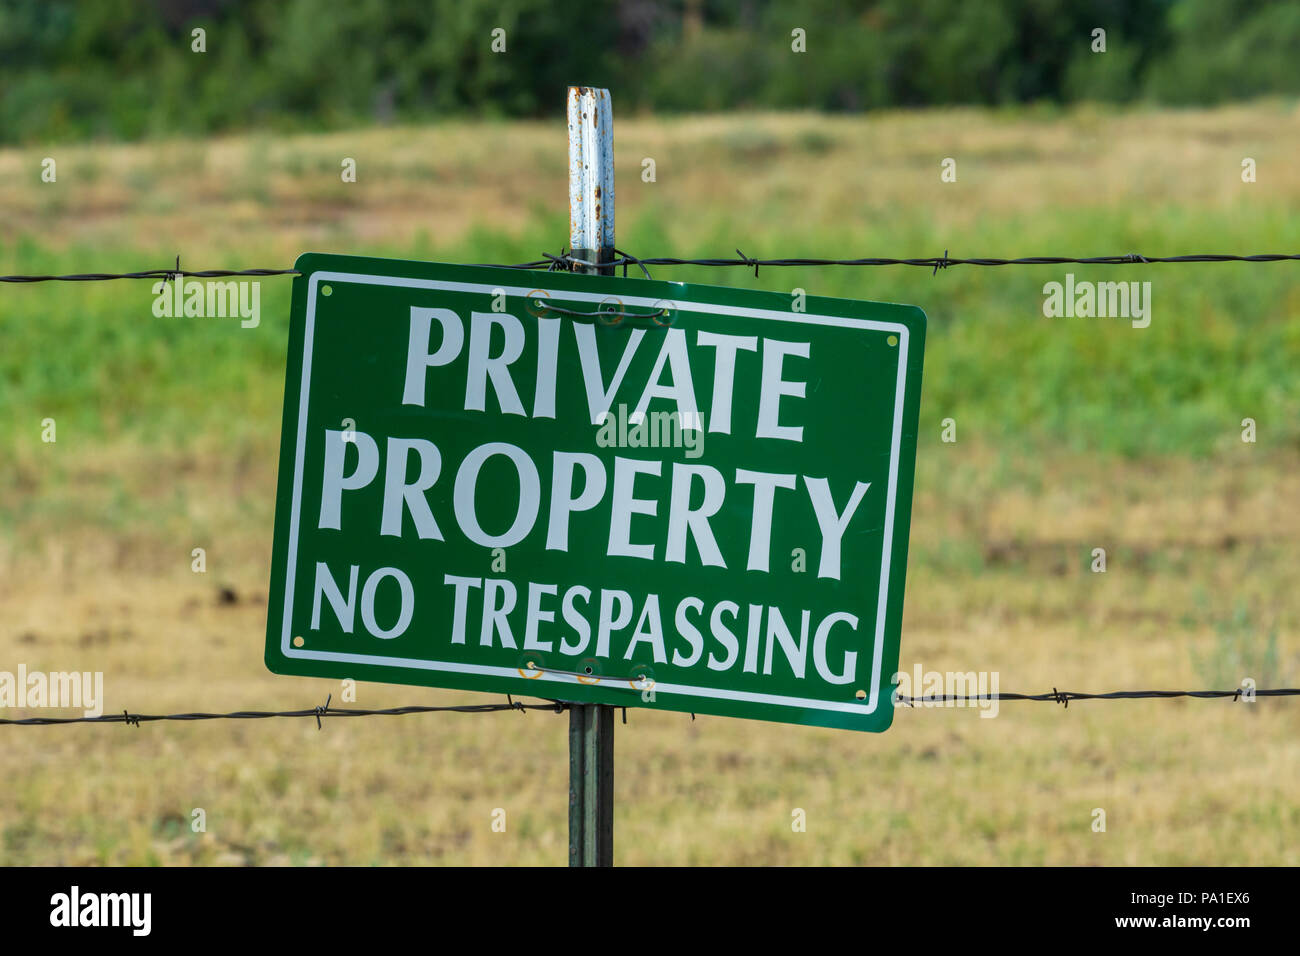 Private property warning sign hanging on barb wire fence, Castle Rock Colorado US. - Stock Image